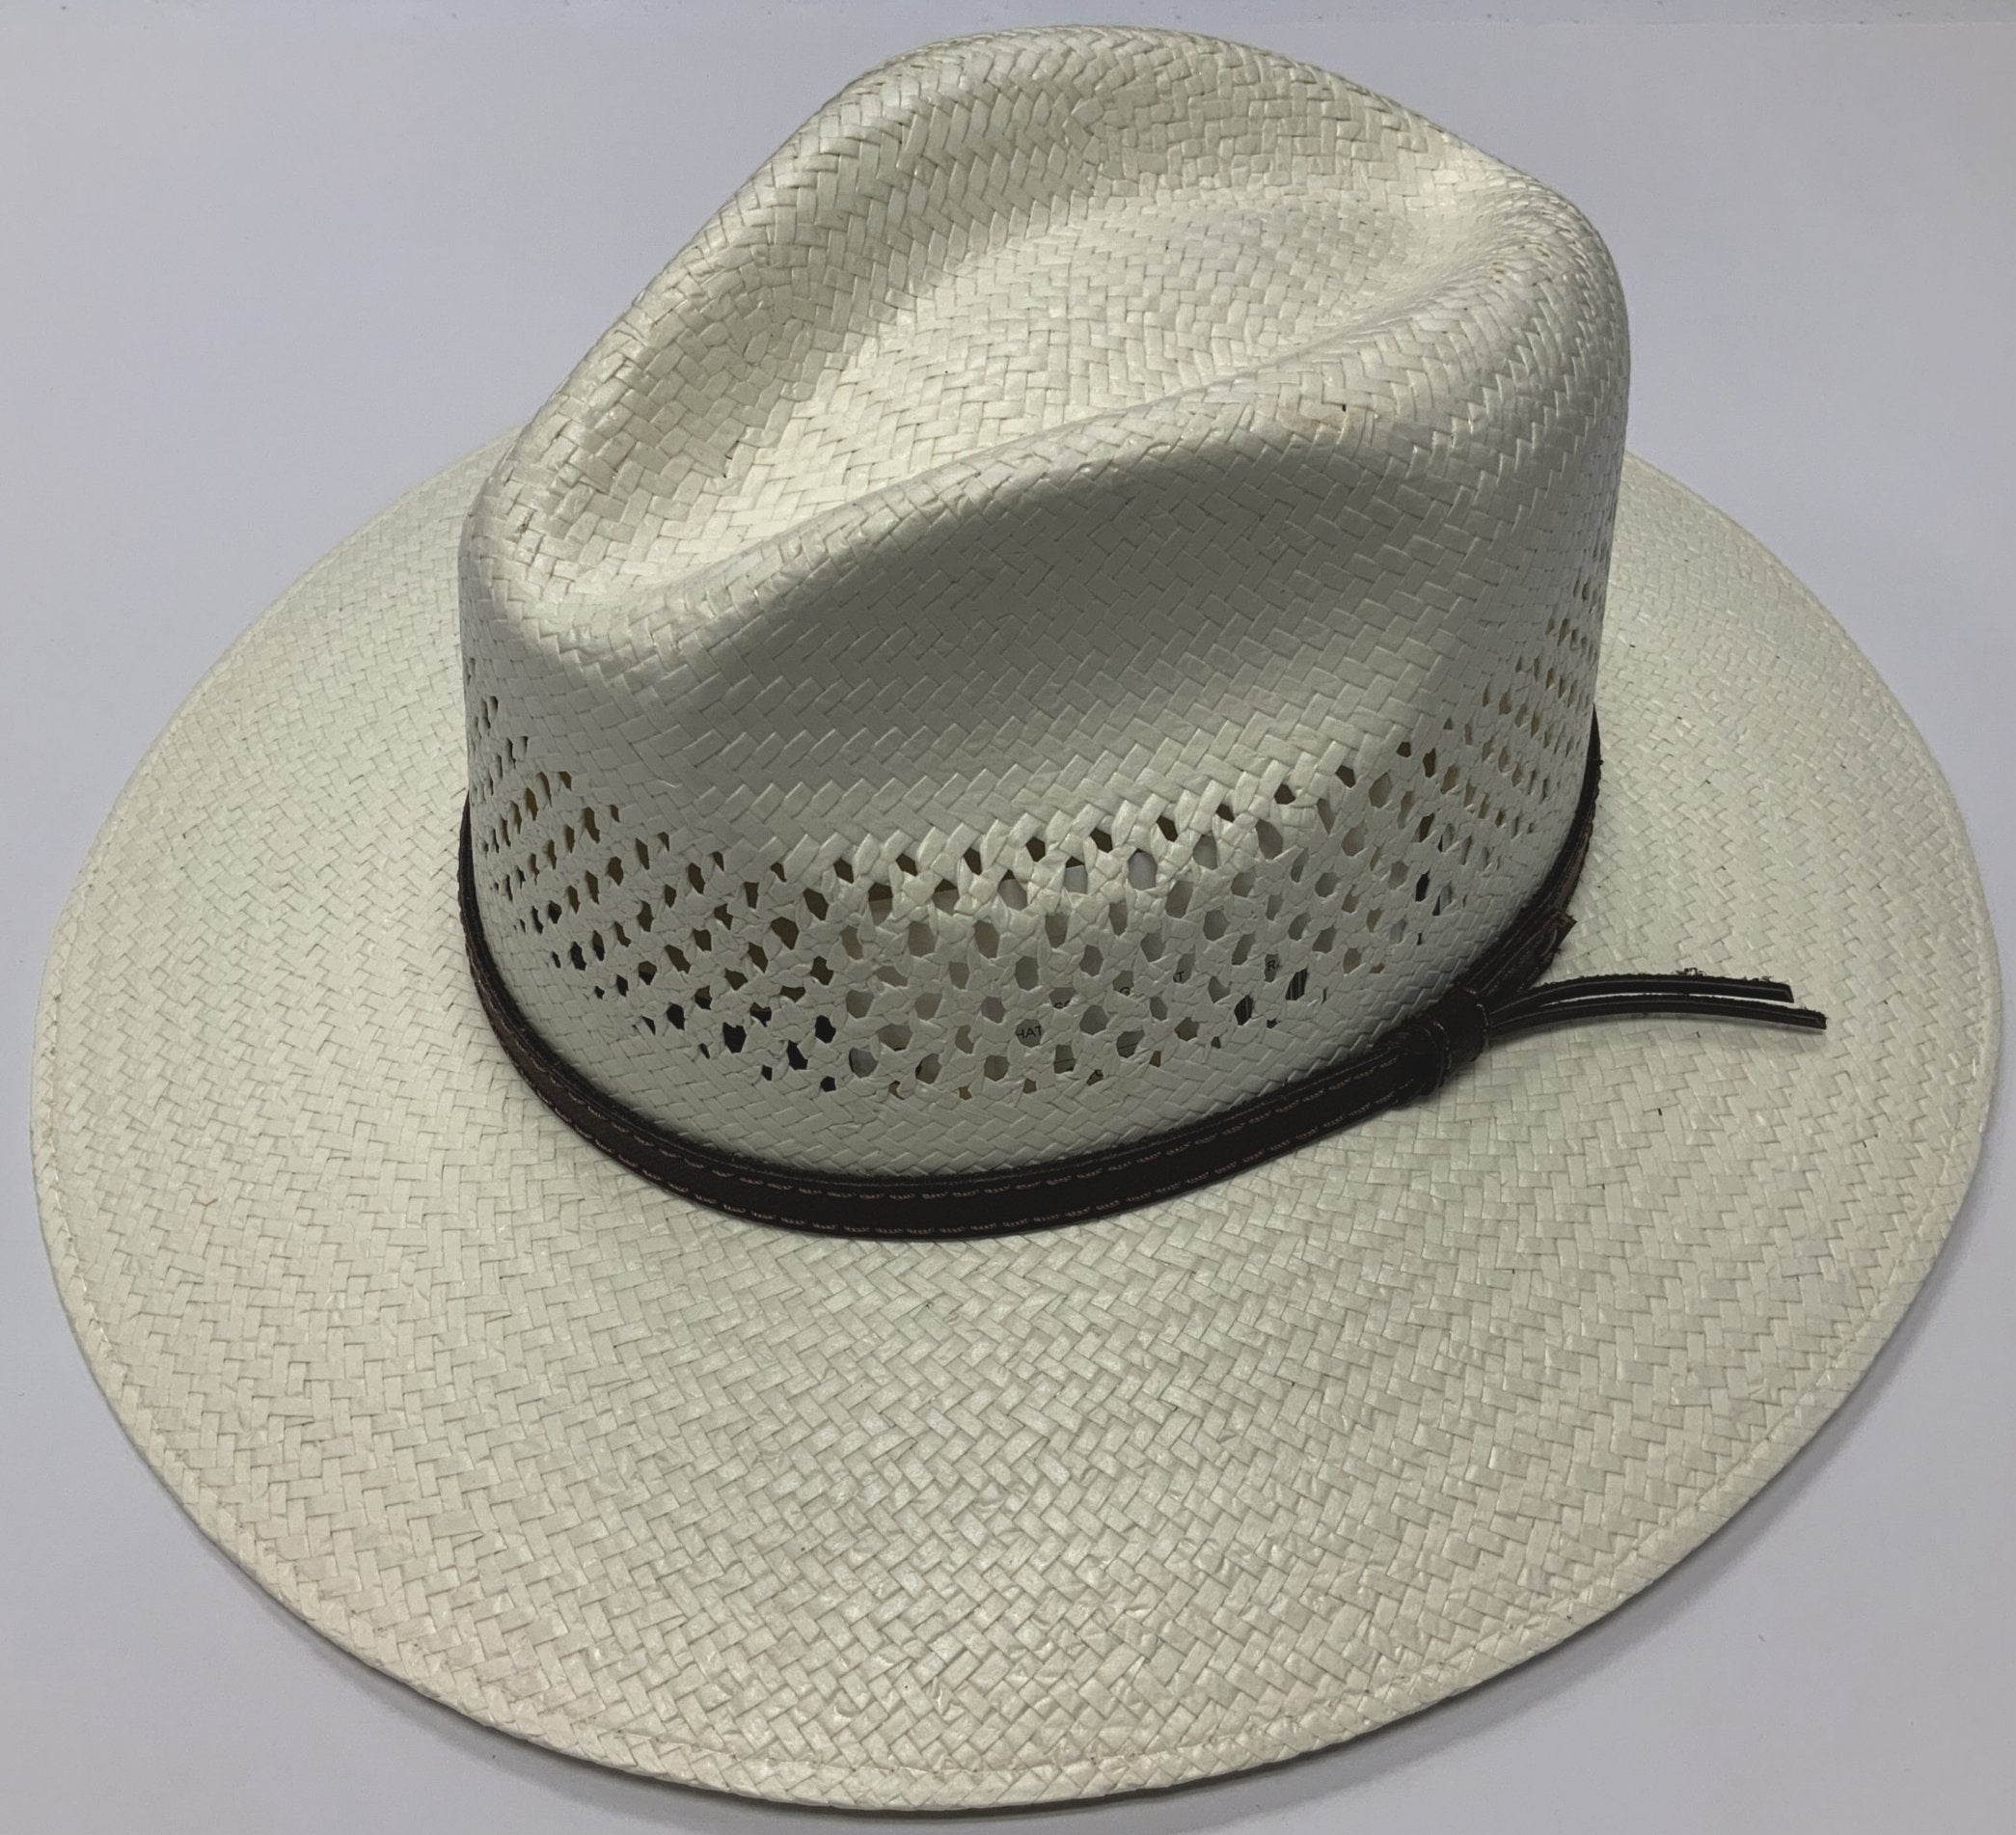 Stetson straw hat has a UV Protection factor of 50+ the highest possible rating. It combines the coolness of an open ventilated weave with our sun blocking fabric, giving you maximum protection for your head, neck, and face. Vented Shantung, UV under brim blocks 98% UVA/UVB,  3 3/4 Brim, Natural in color with Leather band. at lil johns big and tall